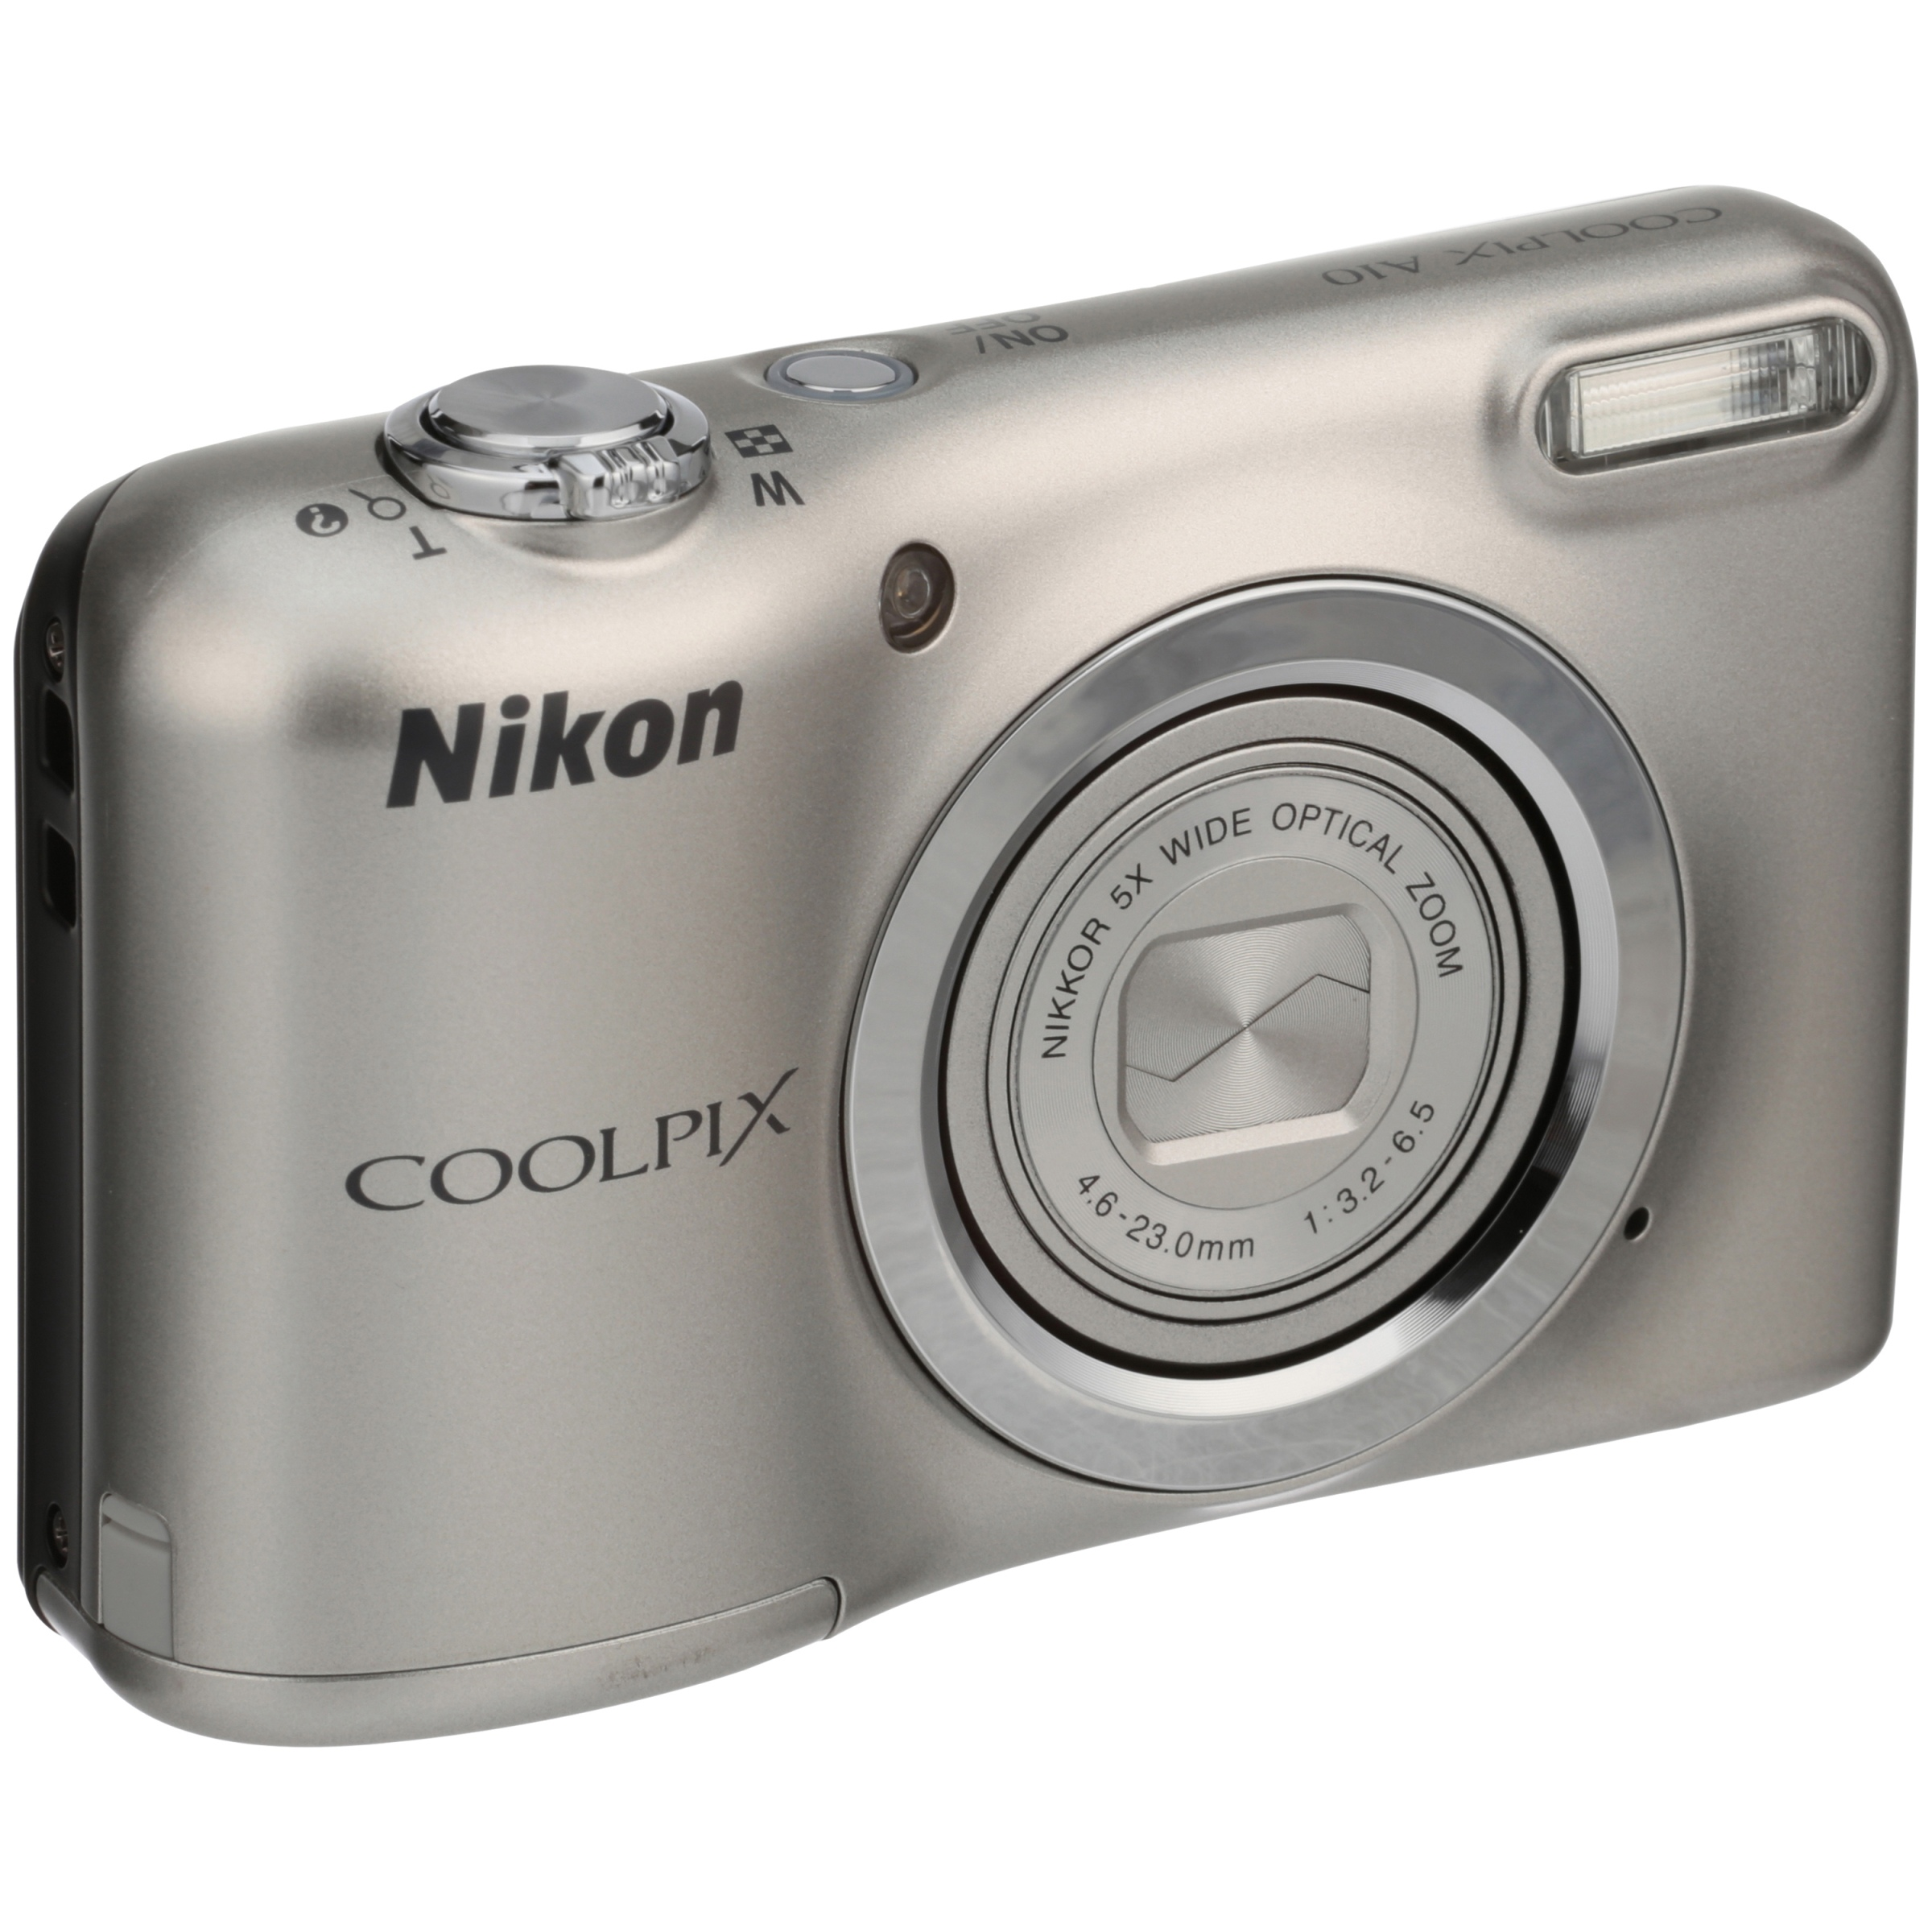 Nikon Coolpix A10 Digital Camera Box